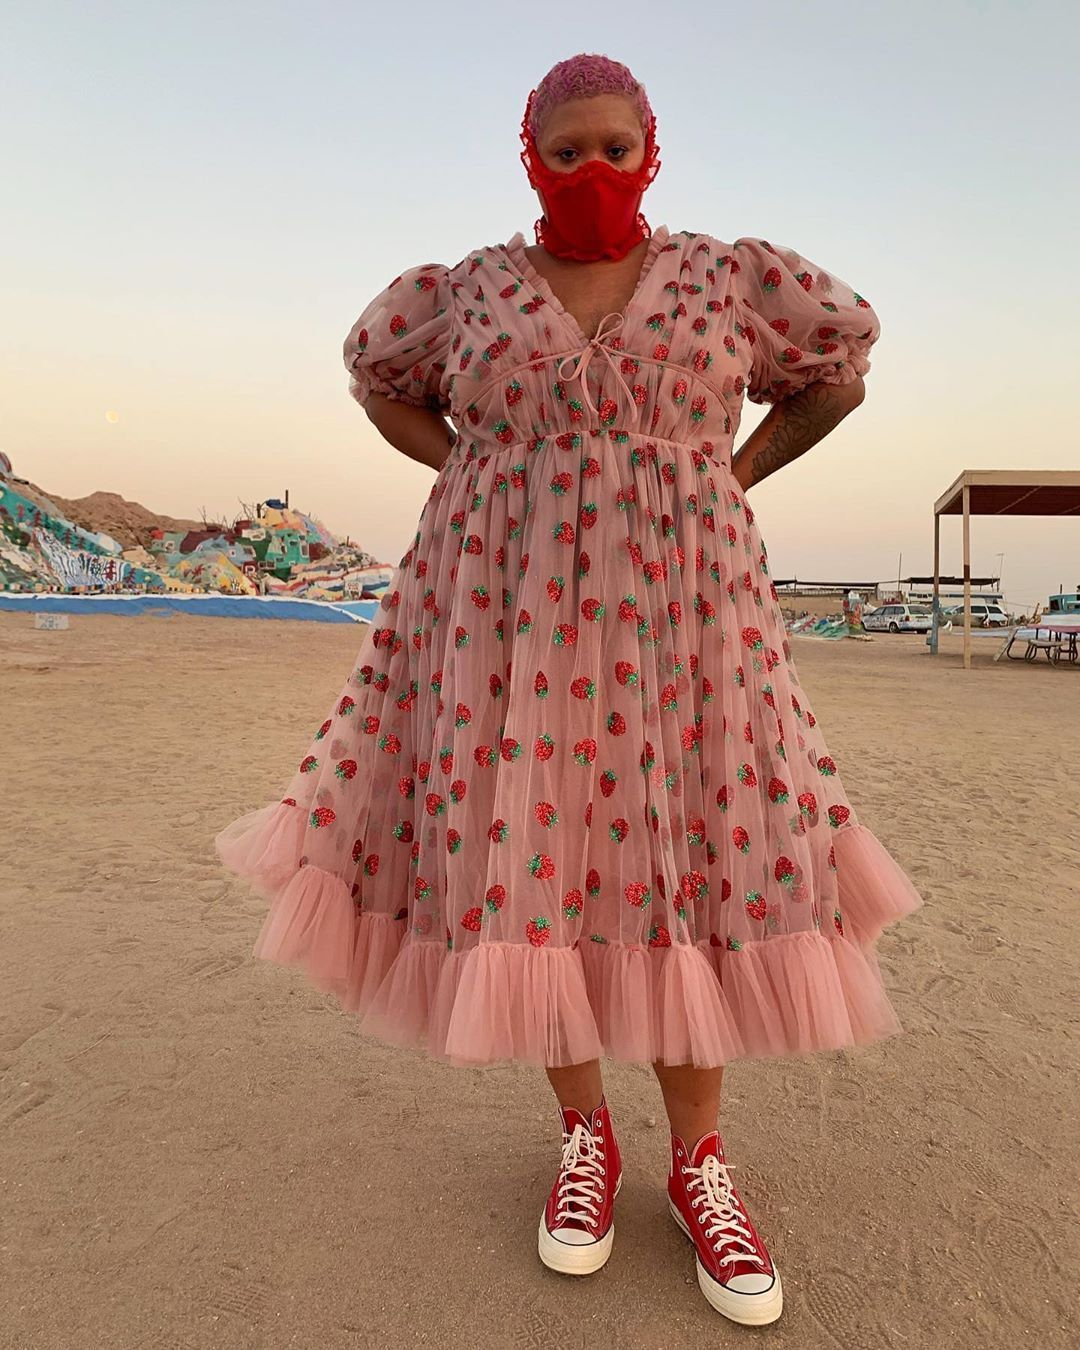 Jazzmyne Robbins On Instagram Ur Strawberry Shoes Converse Chuck 70s 1512217 Dress Borrow From Tessholliday Curvy Girl Outfits Fashion Curvy Outfits [ 1350 x 1080 Pixel ]